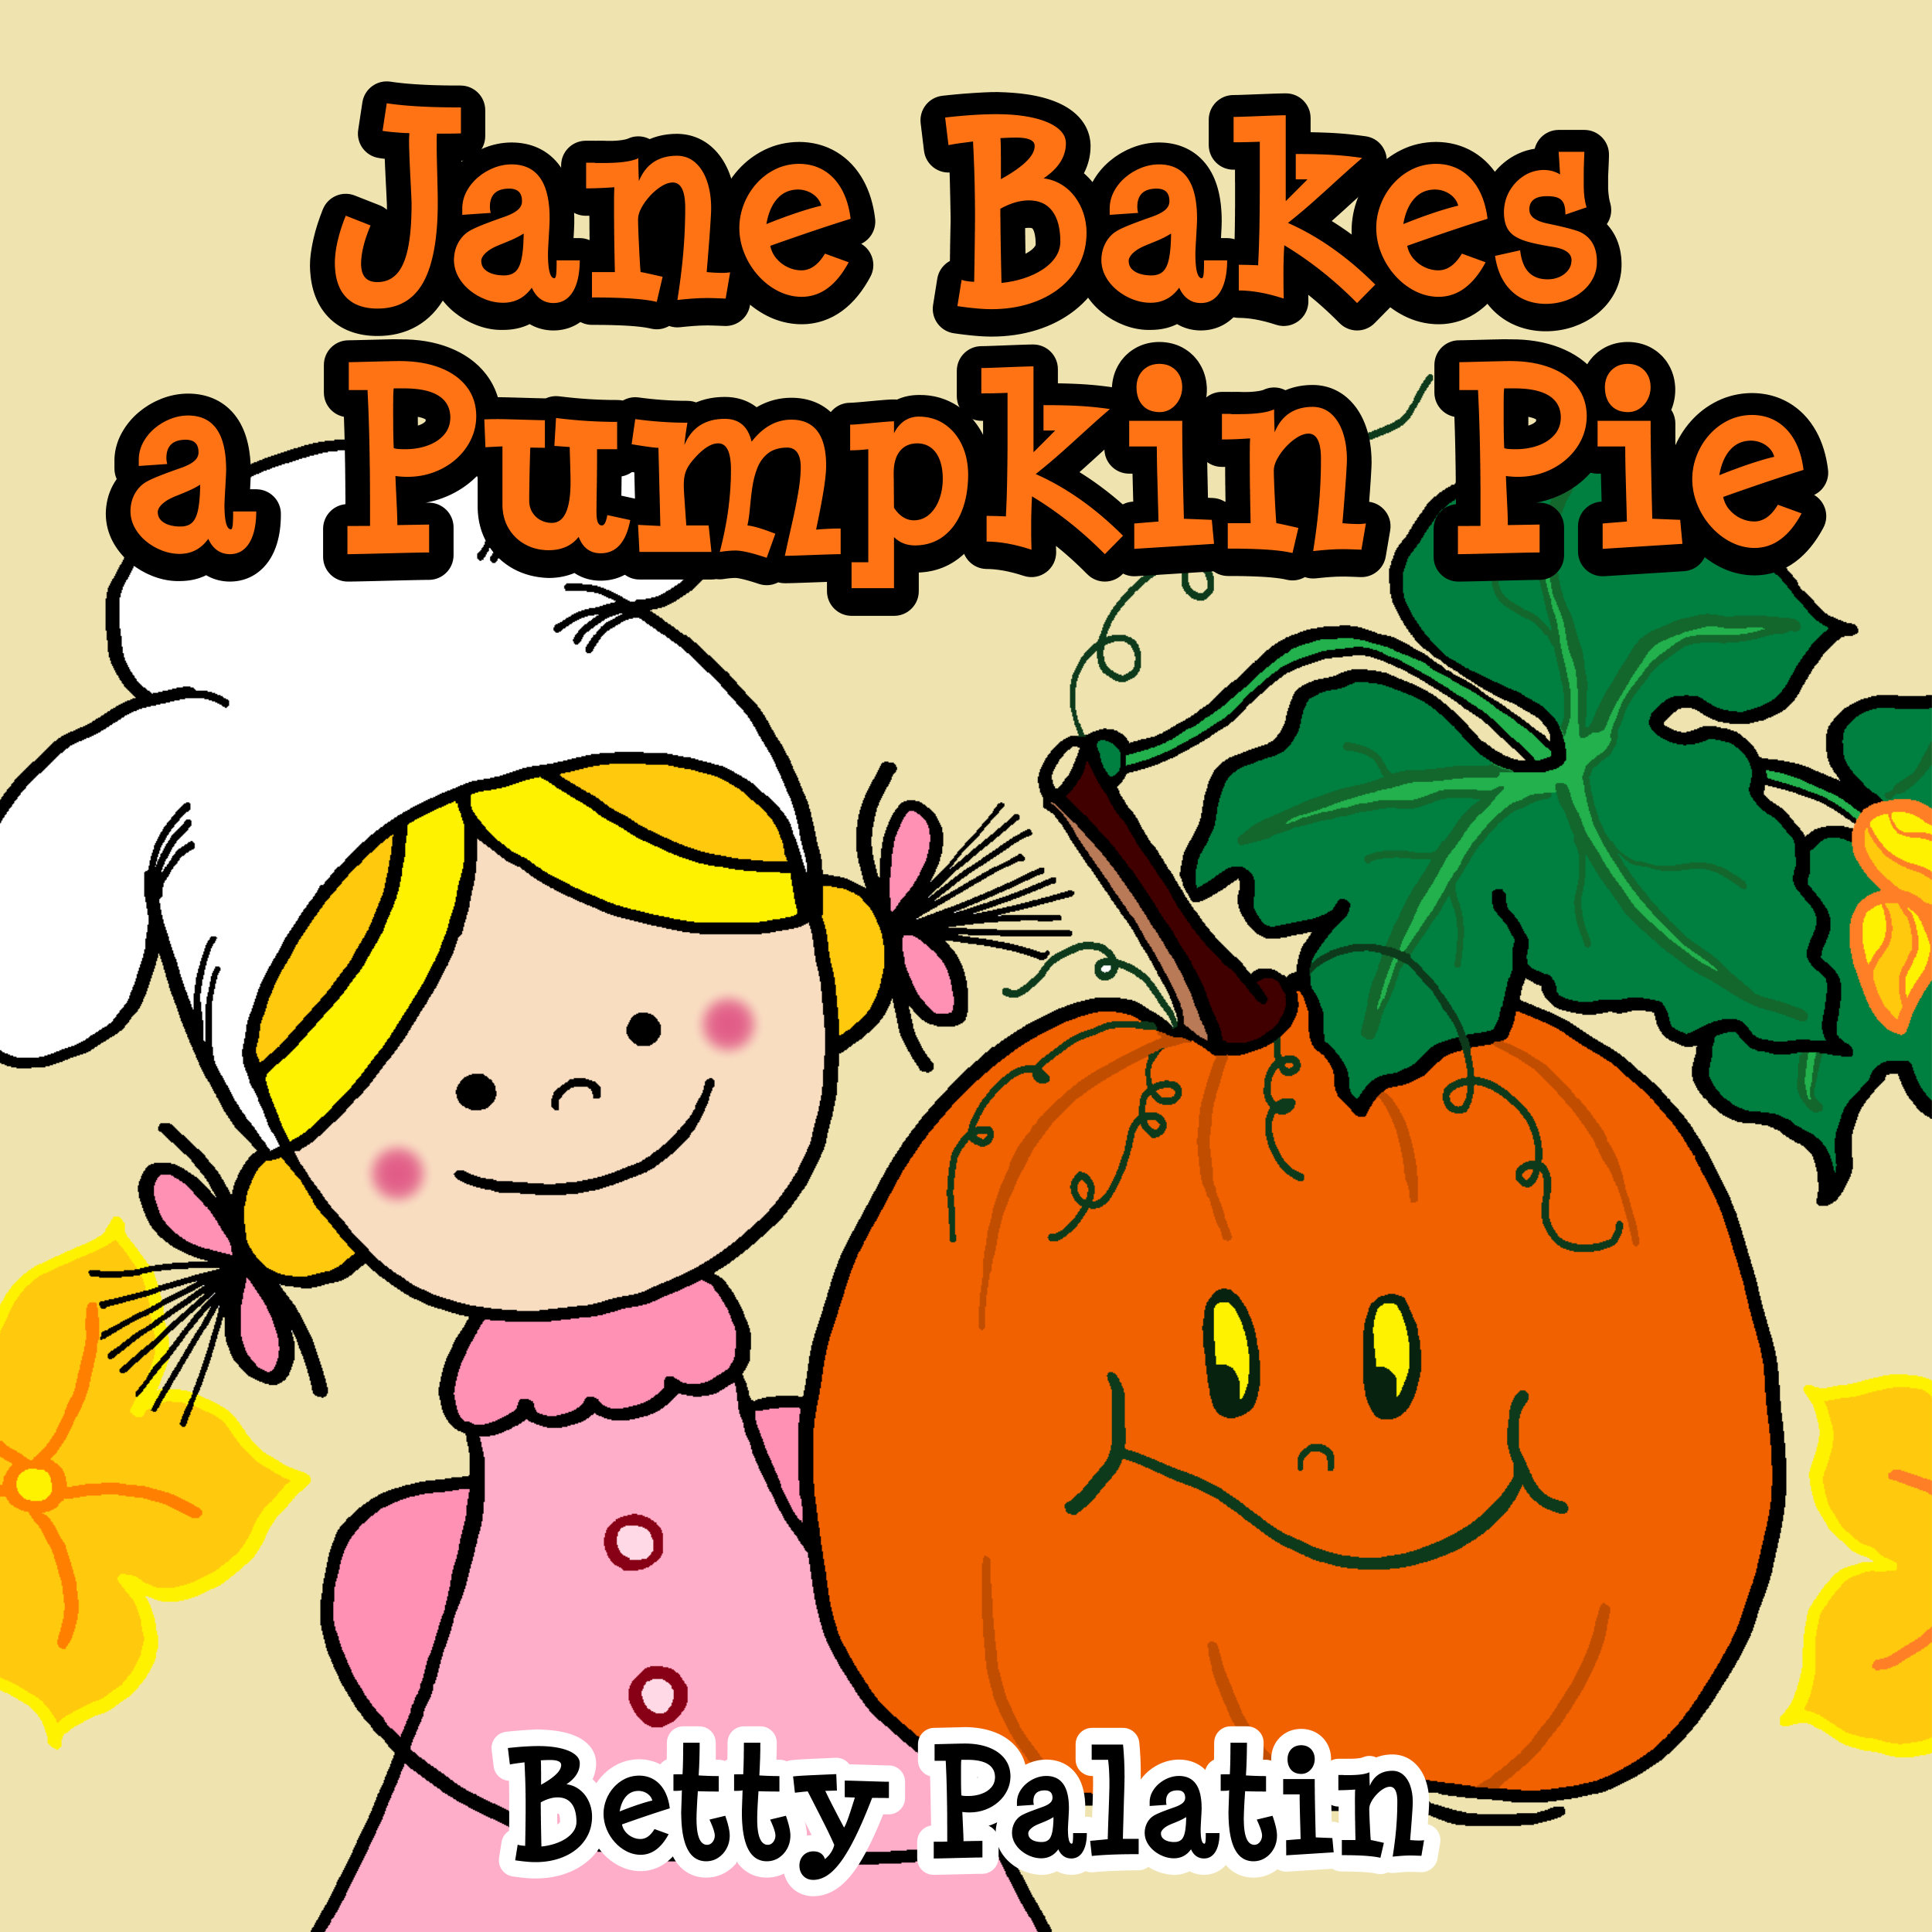 jane_bakes_a_pumpkin_pie